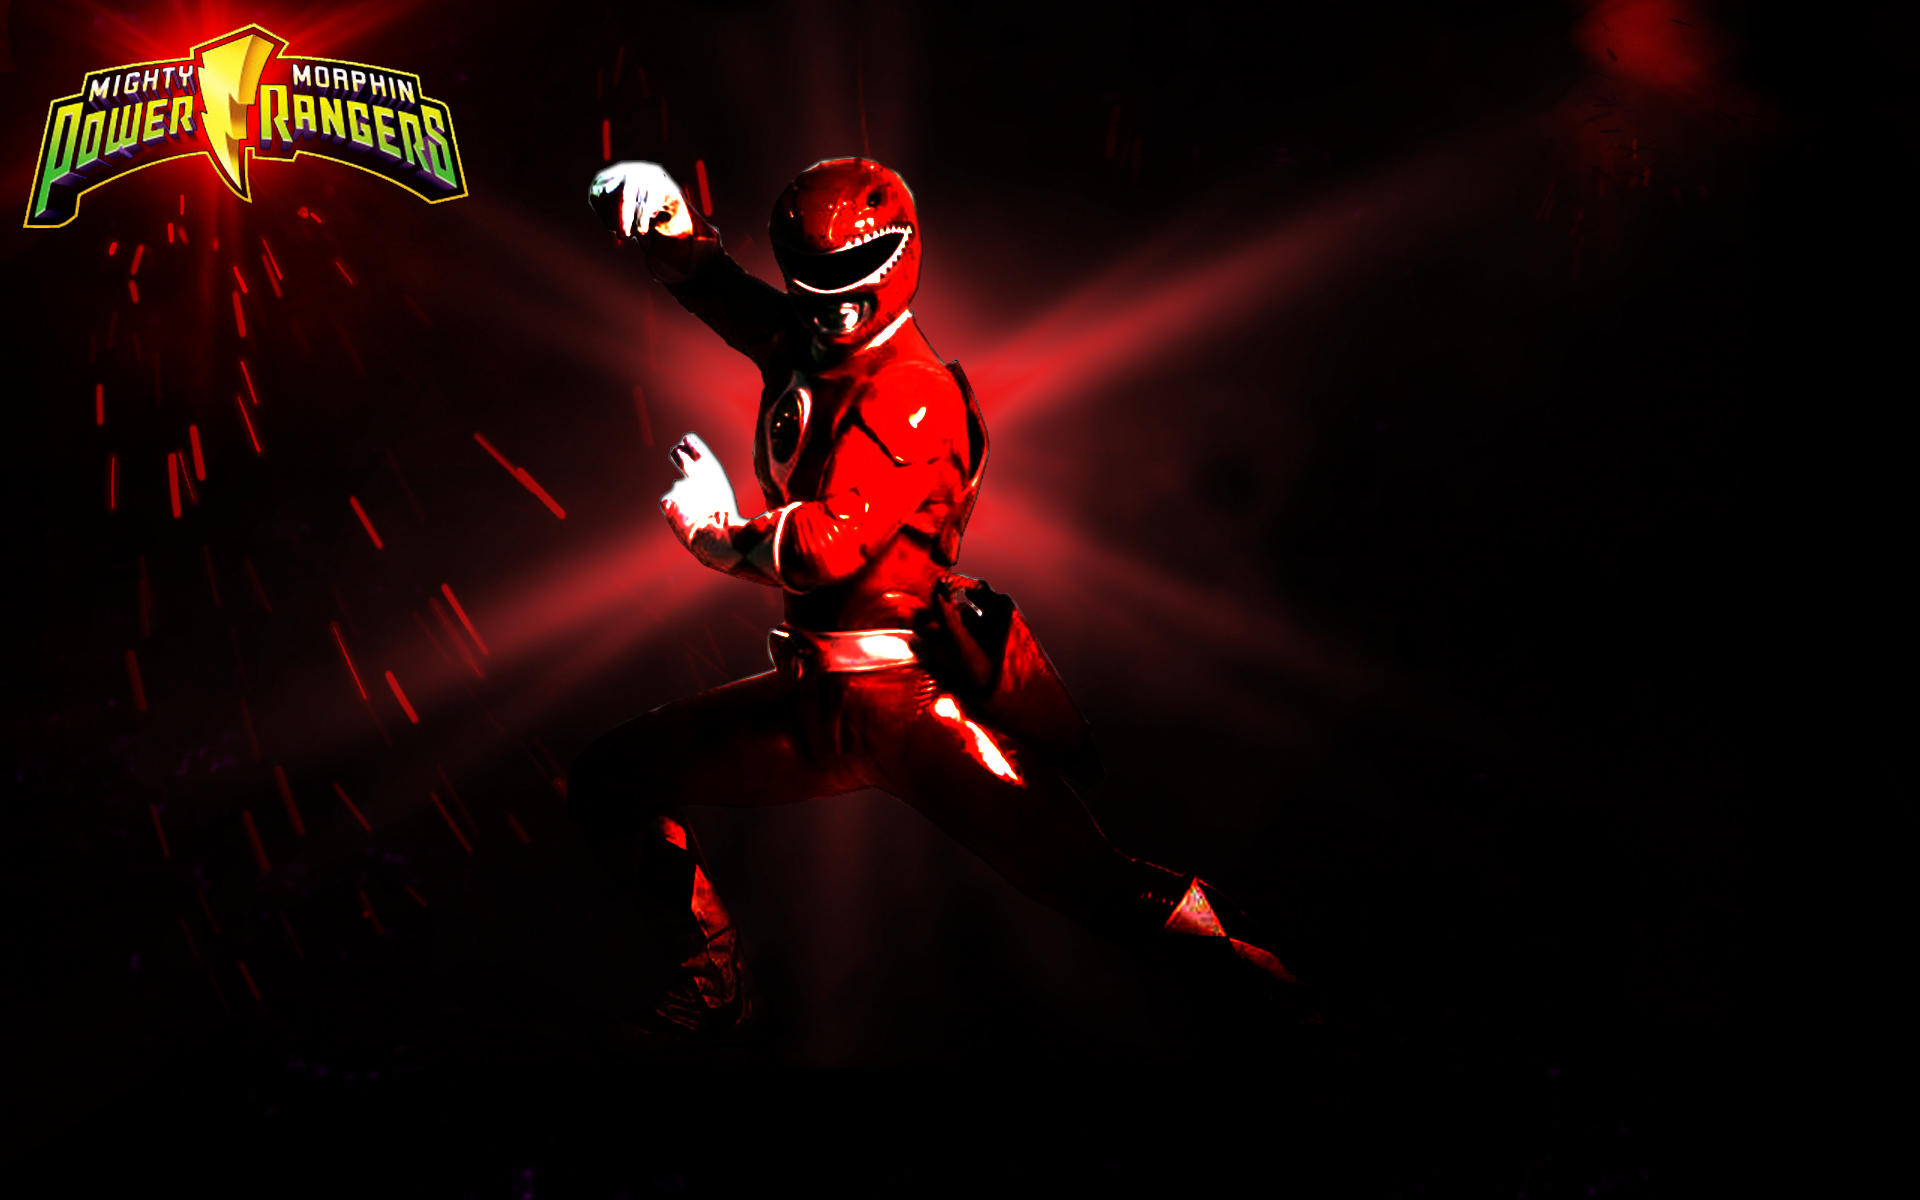 200 power ranger wallpaper - photo #36